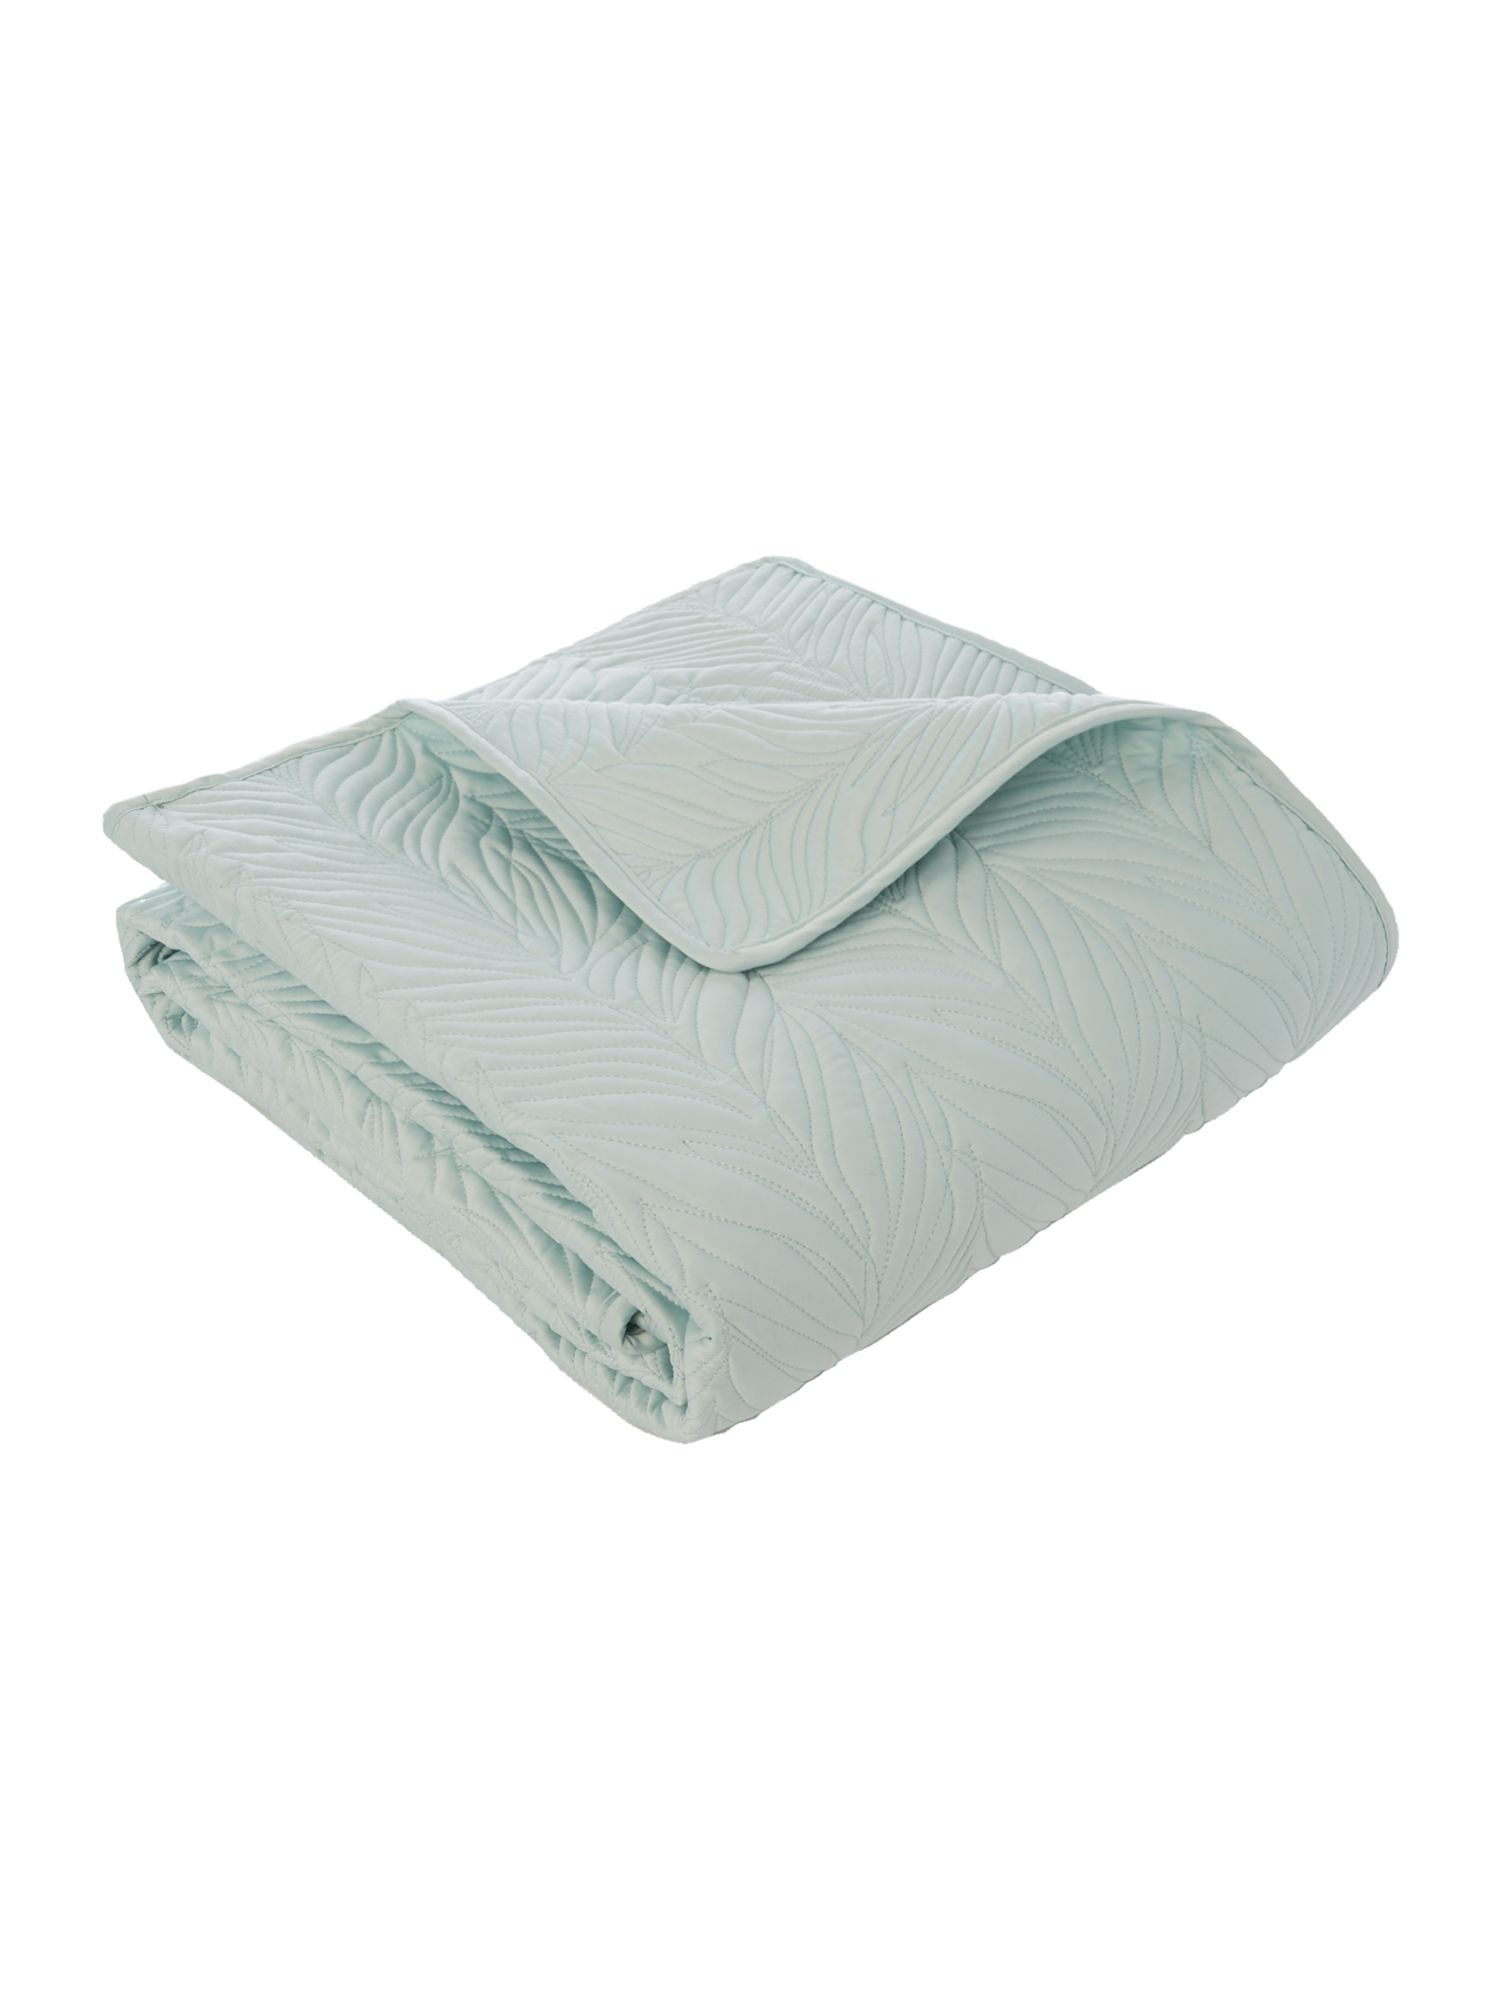 Duck egg leaf bedspread